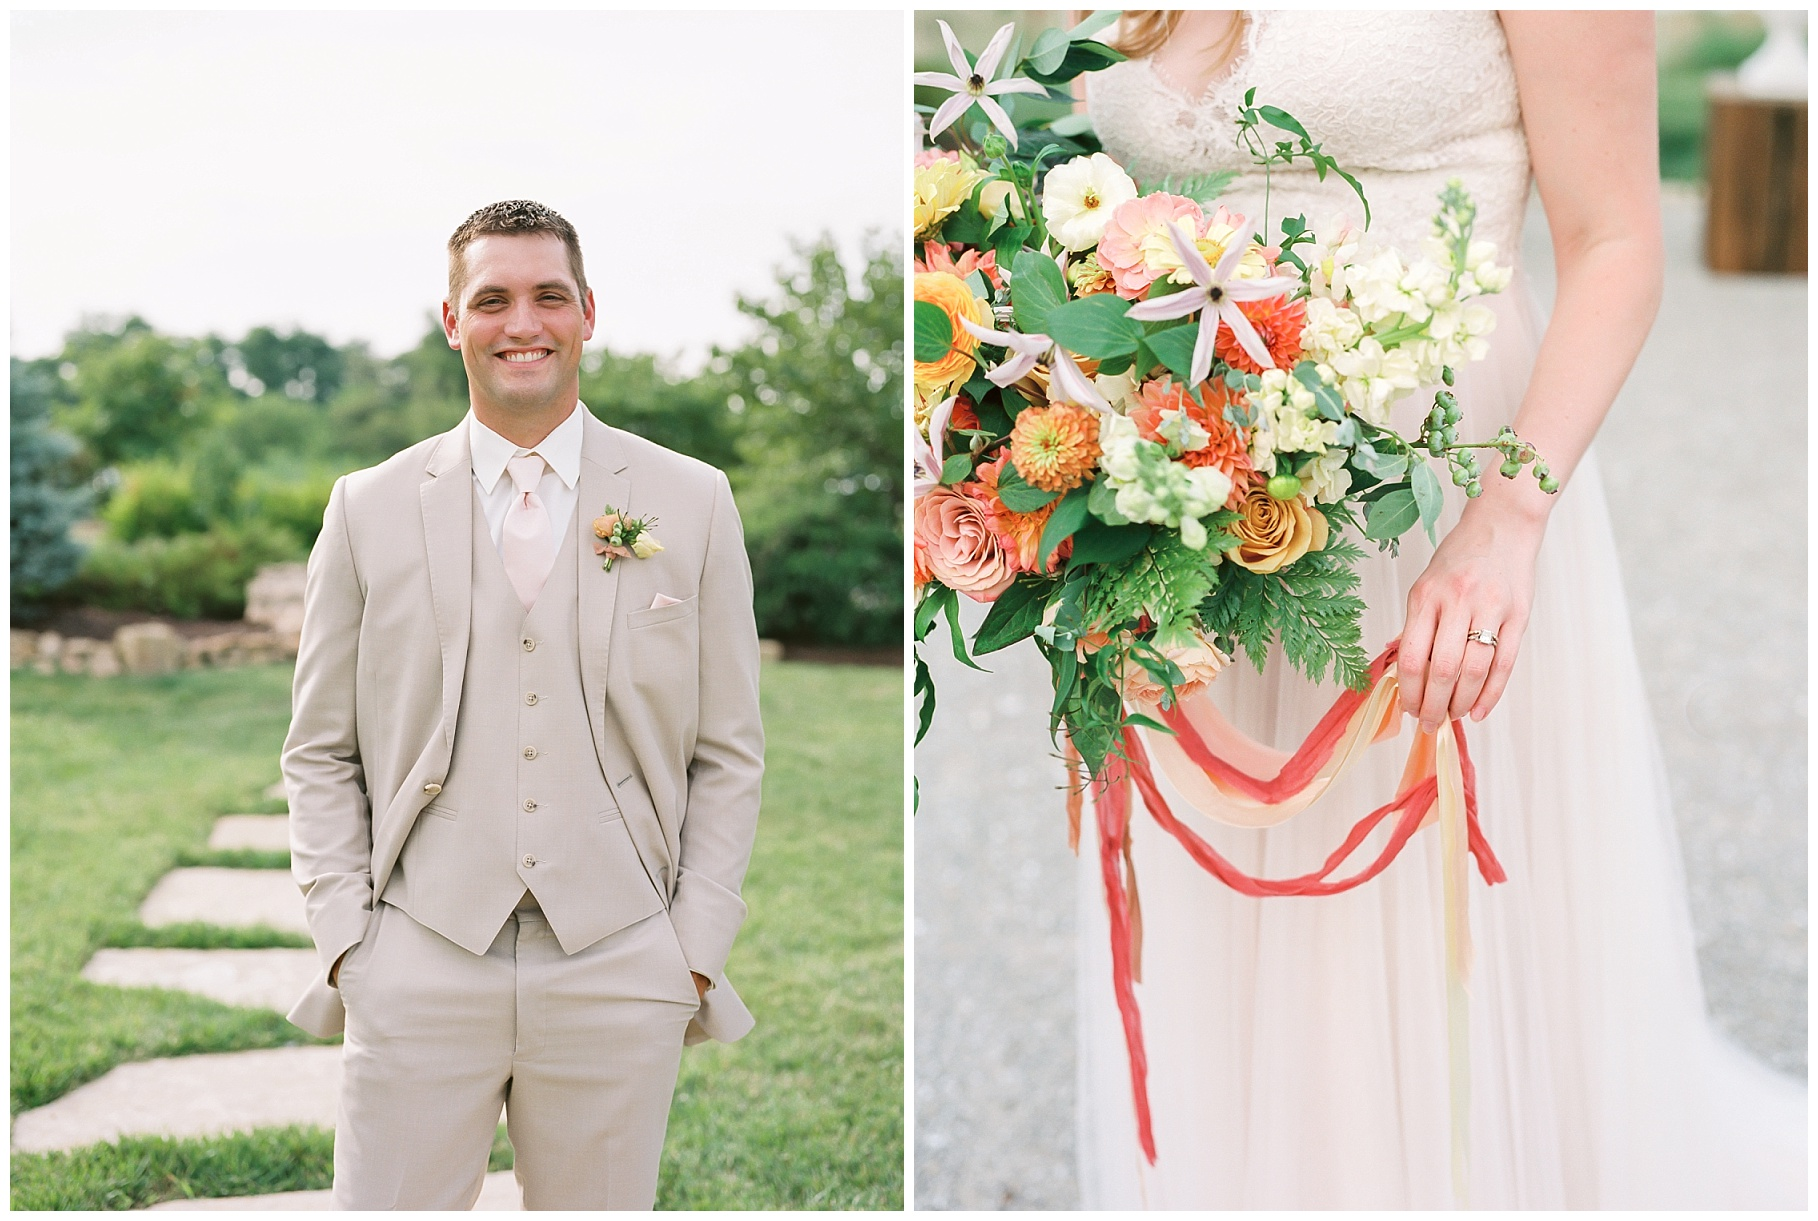 Late Summer Wedding With Pastel Toned Soiree at Blue Bell Farm by Kelsi Kliethermes Photography Best Columbia Missouri Wedding Photographer_0084.jpg